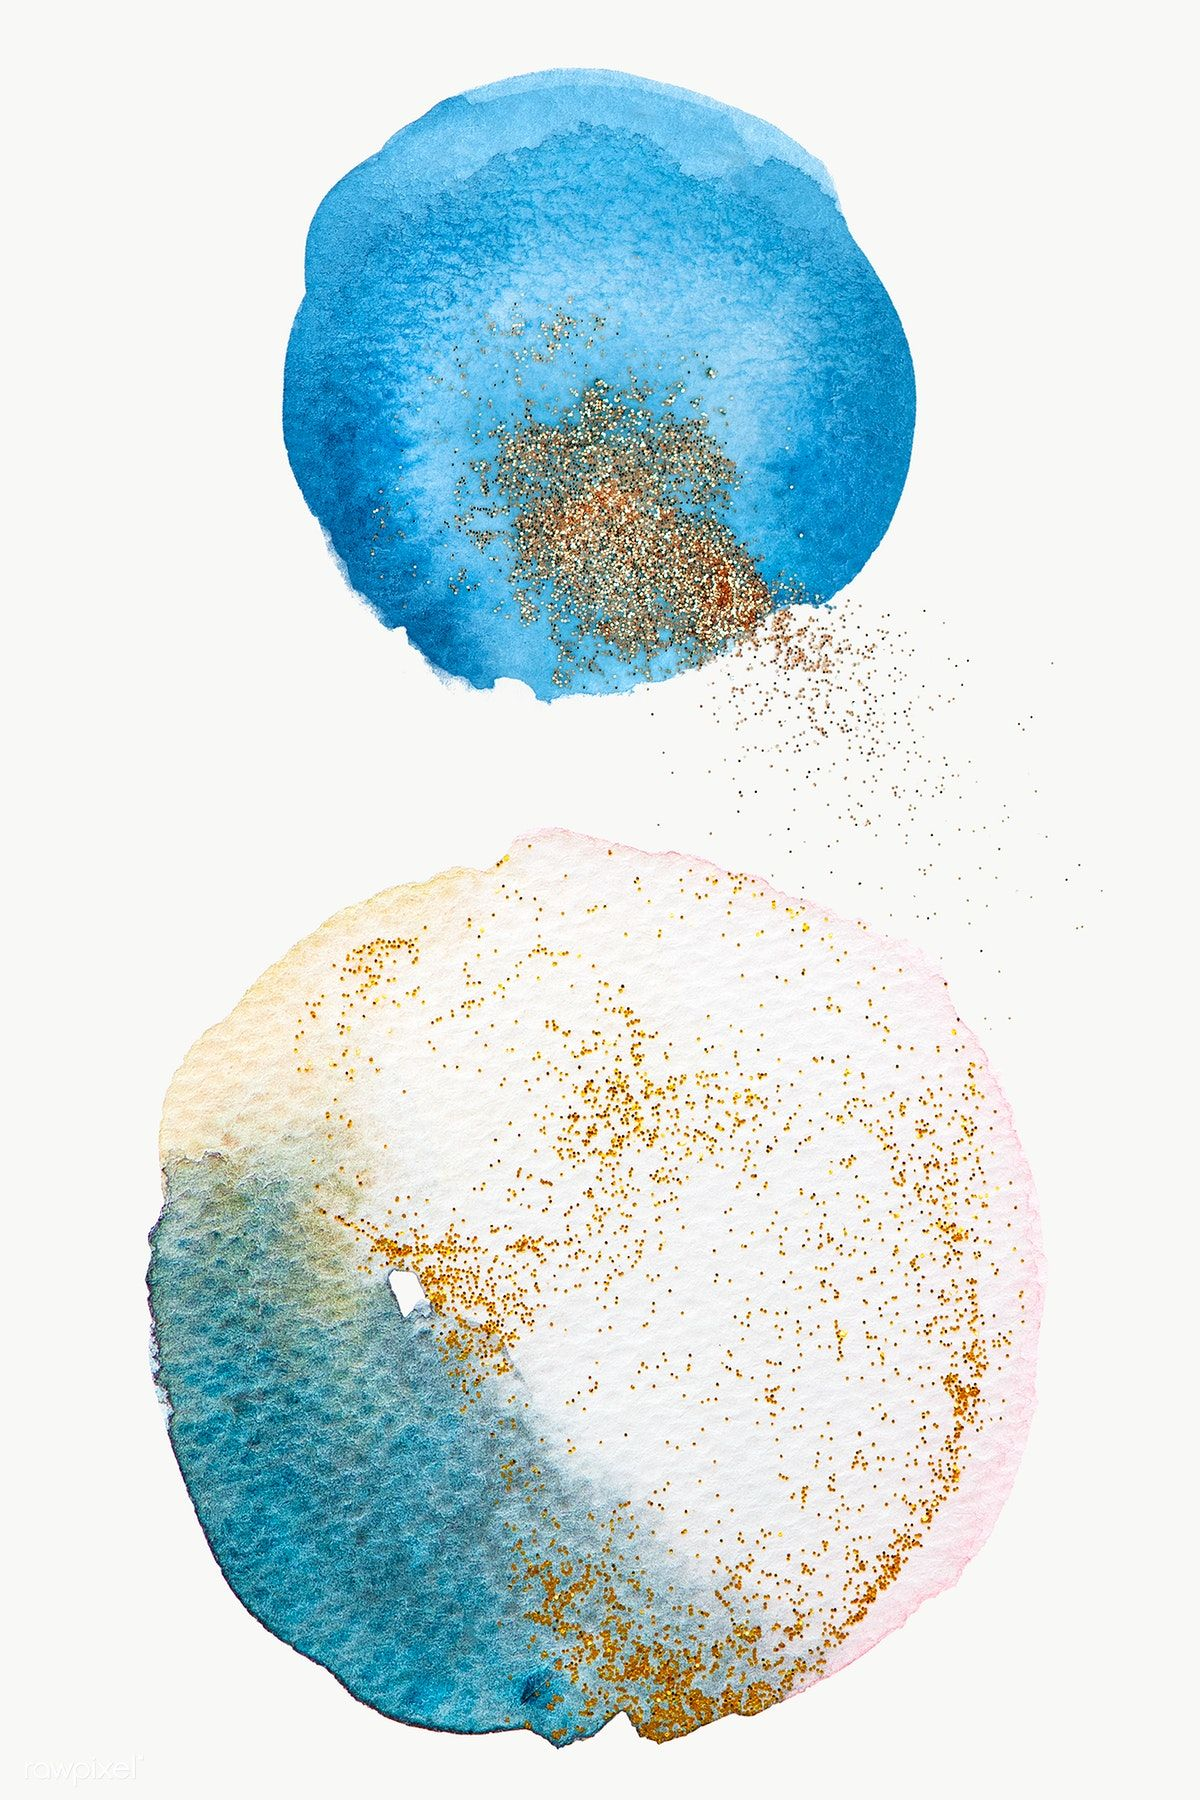 Round Blue Watercolor With Gold Glitter Transparent Png Free Image By Rawpixel Com